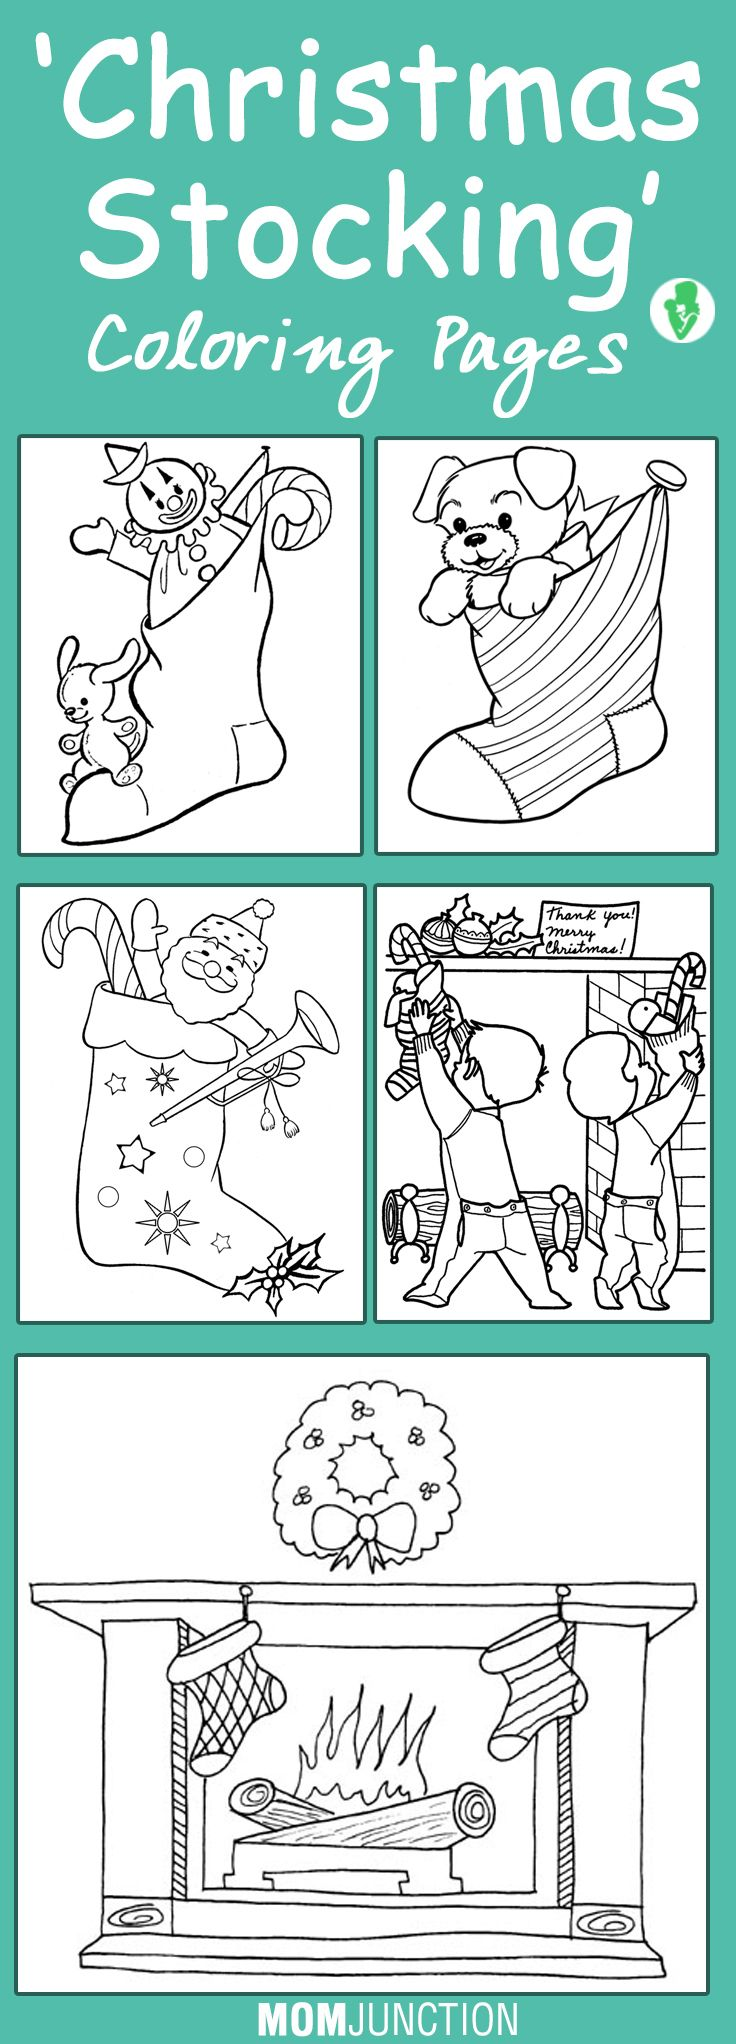 Top 25 Free Printable Christmas Stocking Coloring Pages Online ...